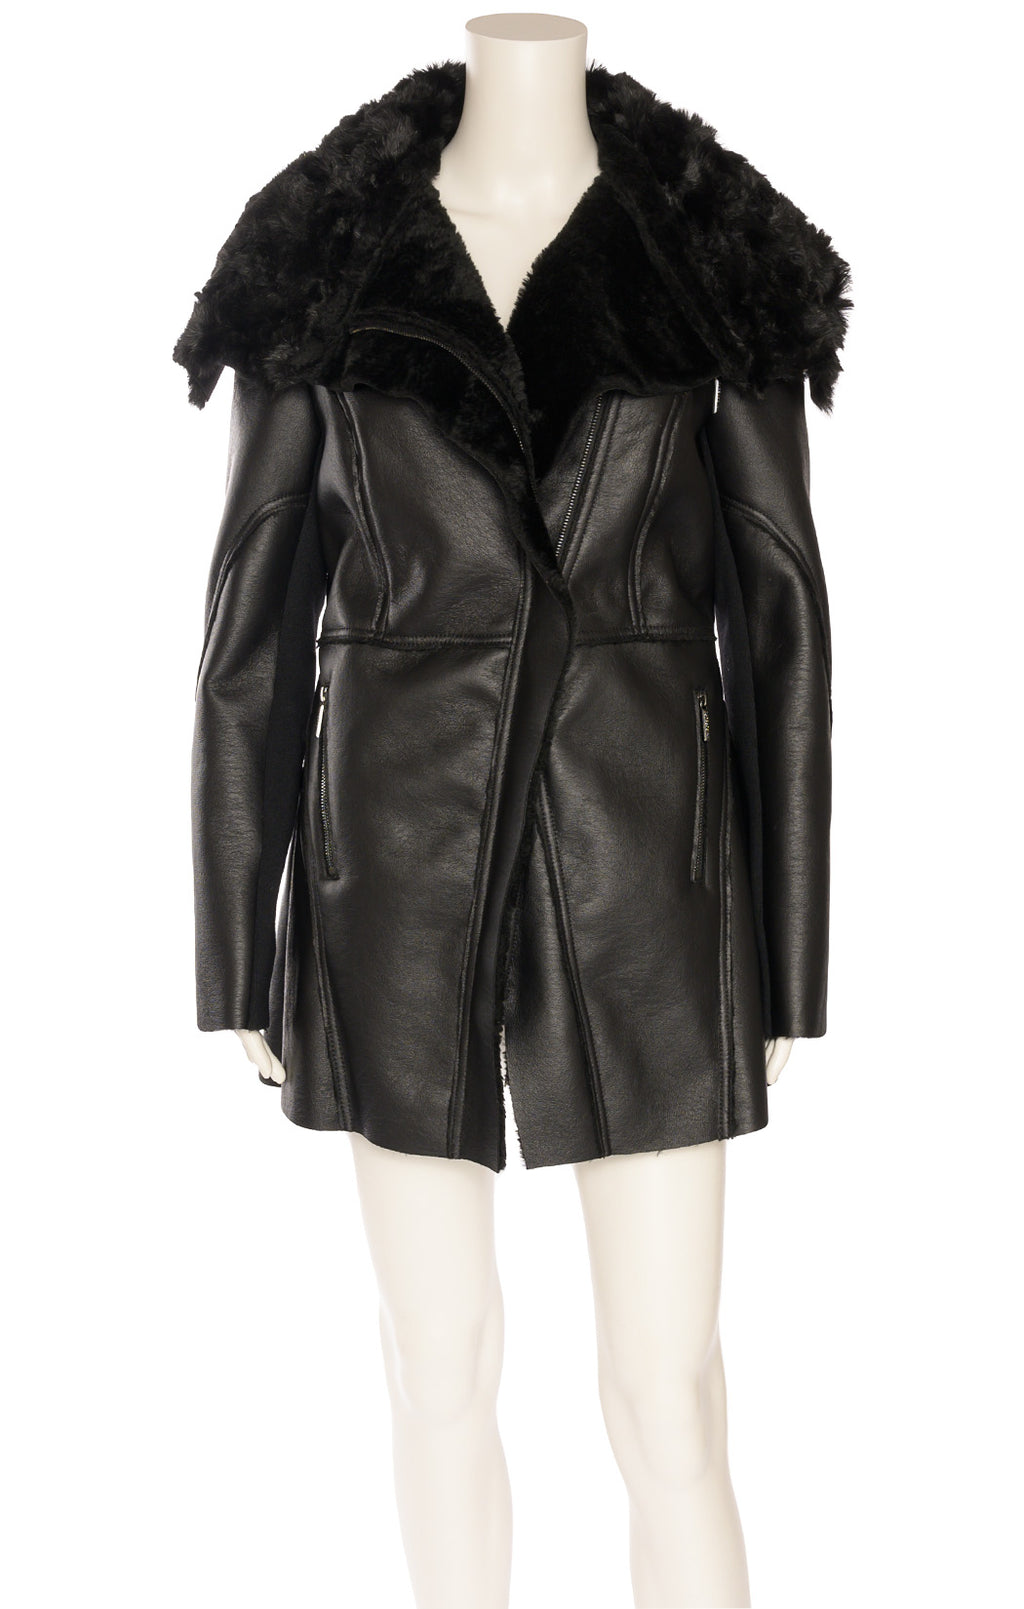 Black faux leather and faux fur jacket